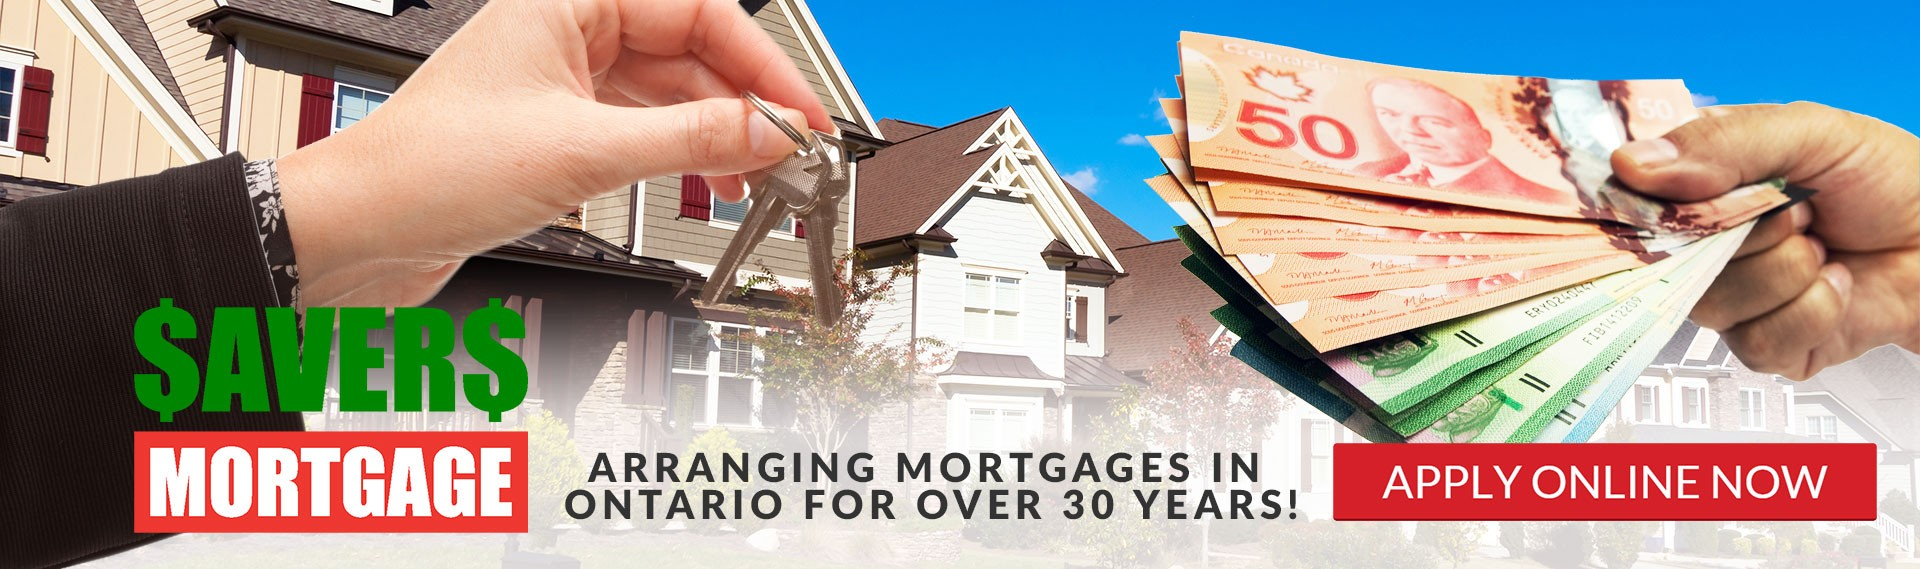 savers-mortgage-main-banner